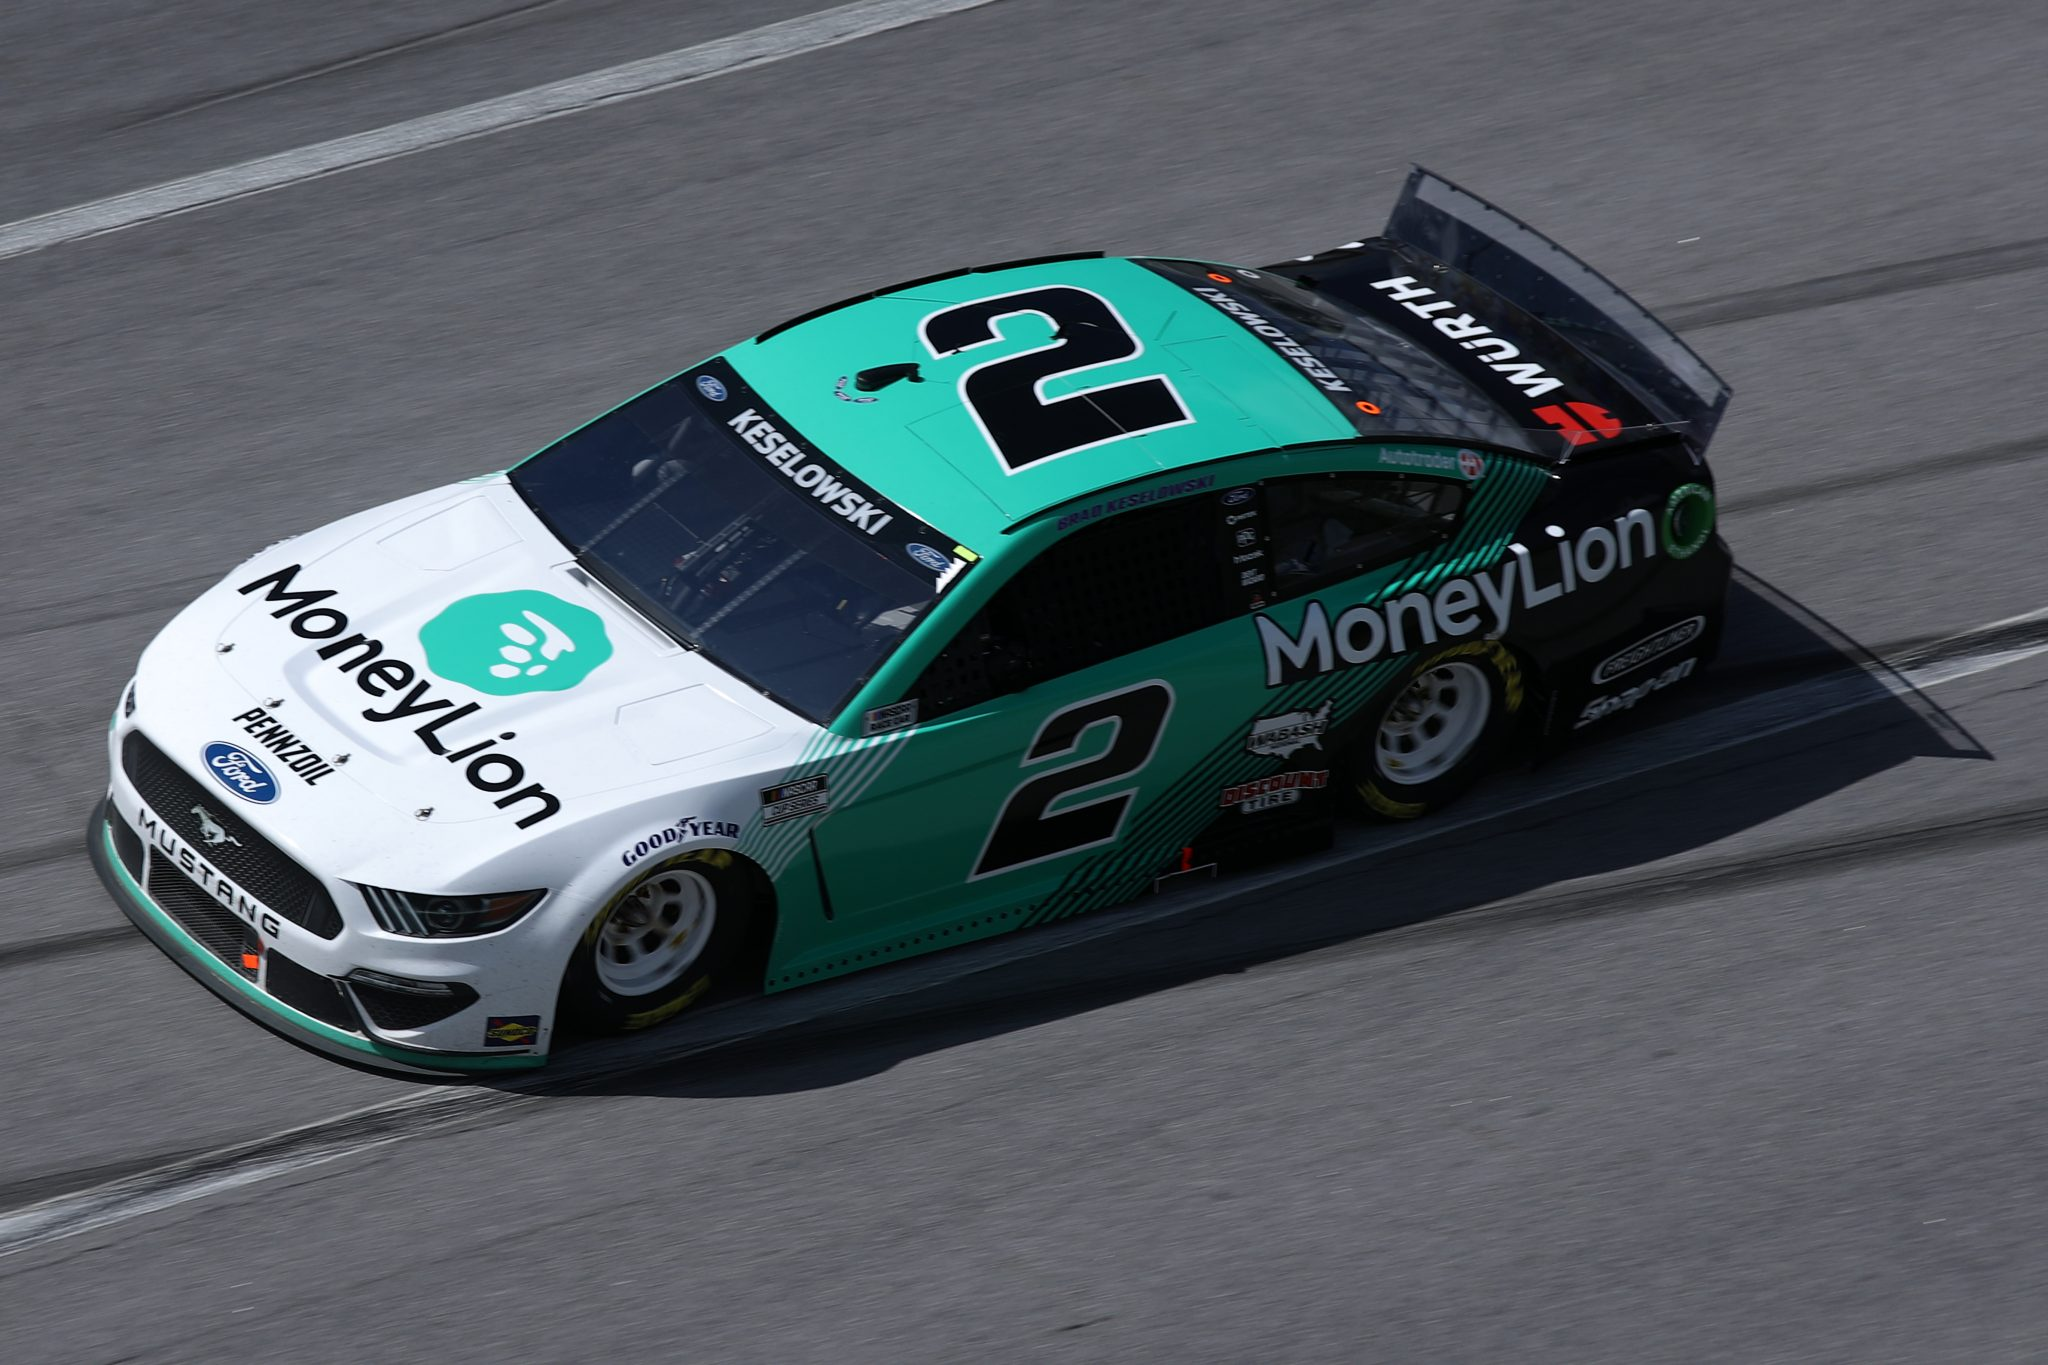 TALLADEGA, ALABAMA - APRIL 25: Brad Keselowski, driver of the #2 MoneyLion Ford, drives during the NASCAR Cup Series GEICO 500 at Talladega Superspeedway on April 25, 2021 in Talladega, Alabama. (Photo by Sean Gardner/Getty Images)   Getty Images